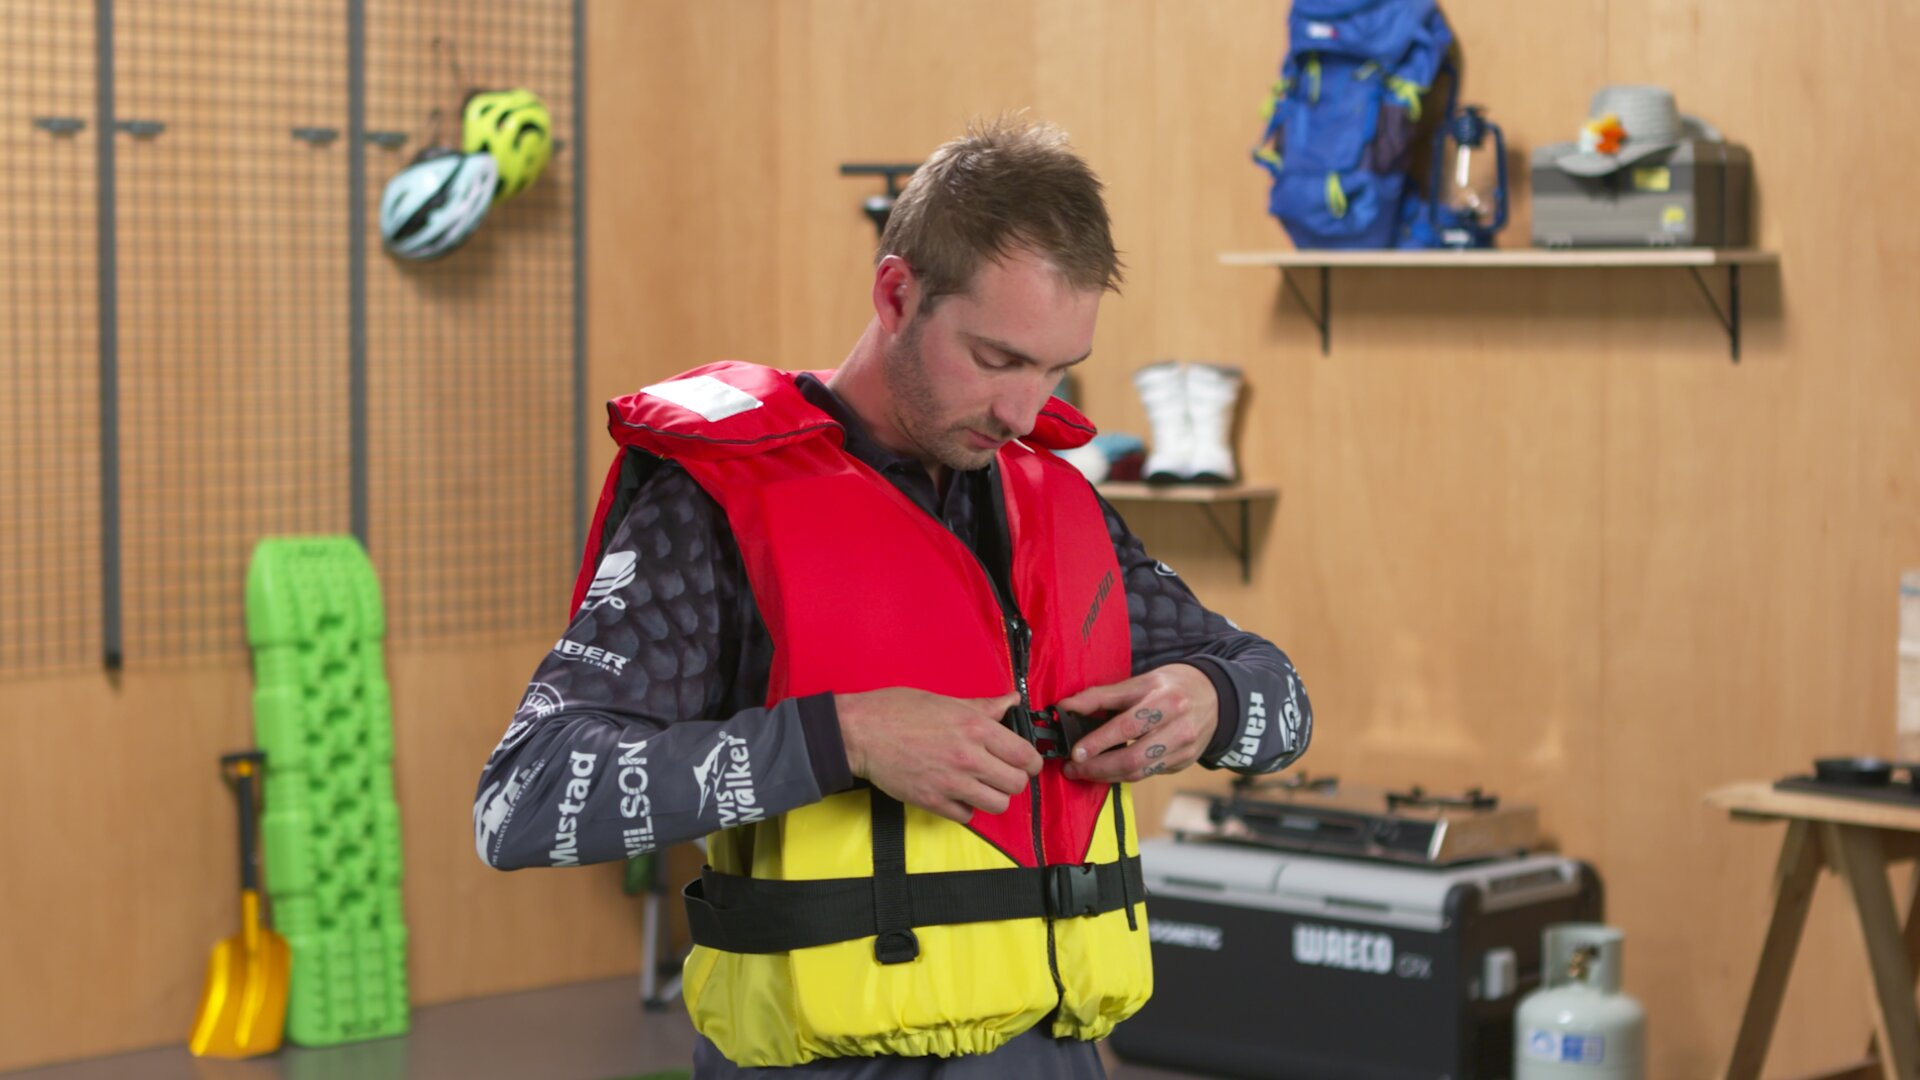 How To Choose A Personal Flotation Device - PFD 100